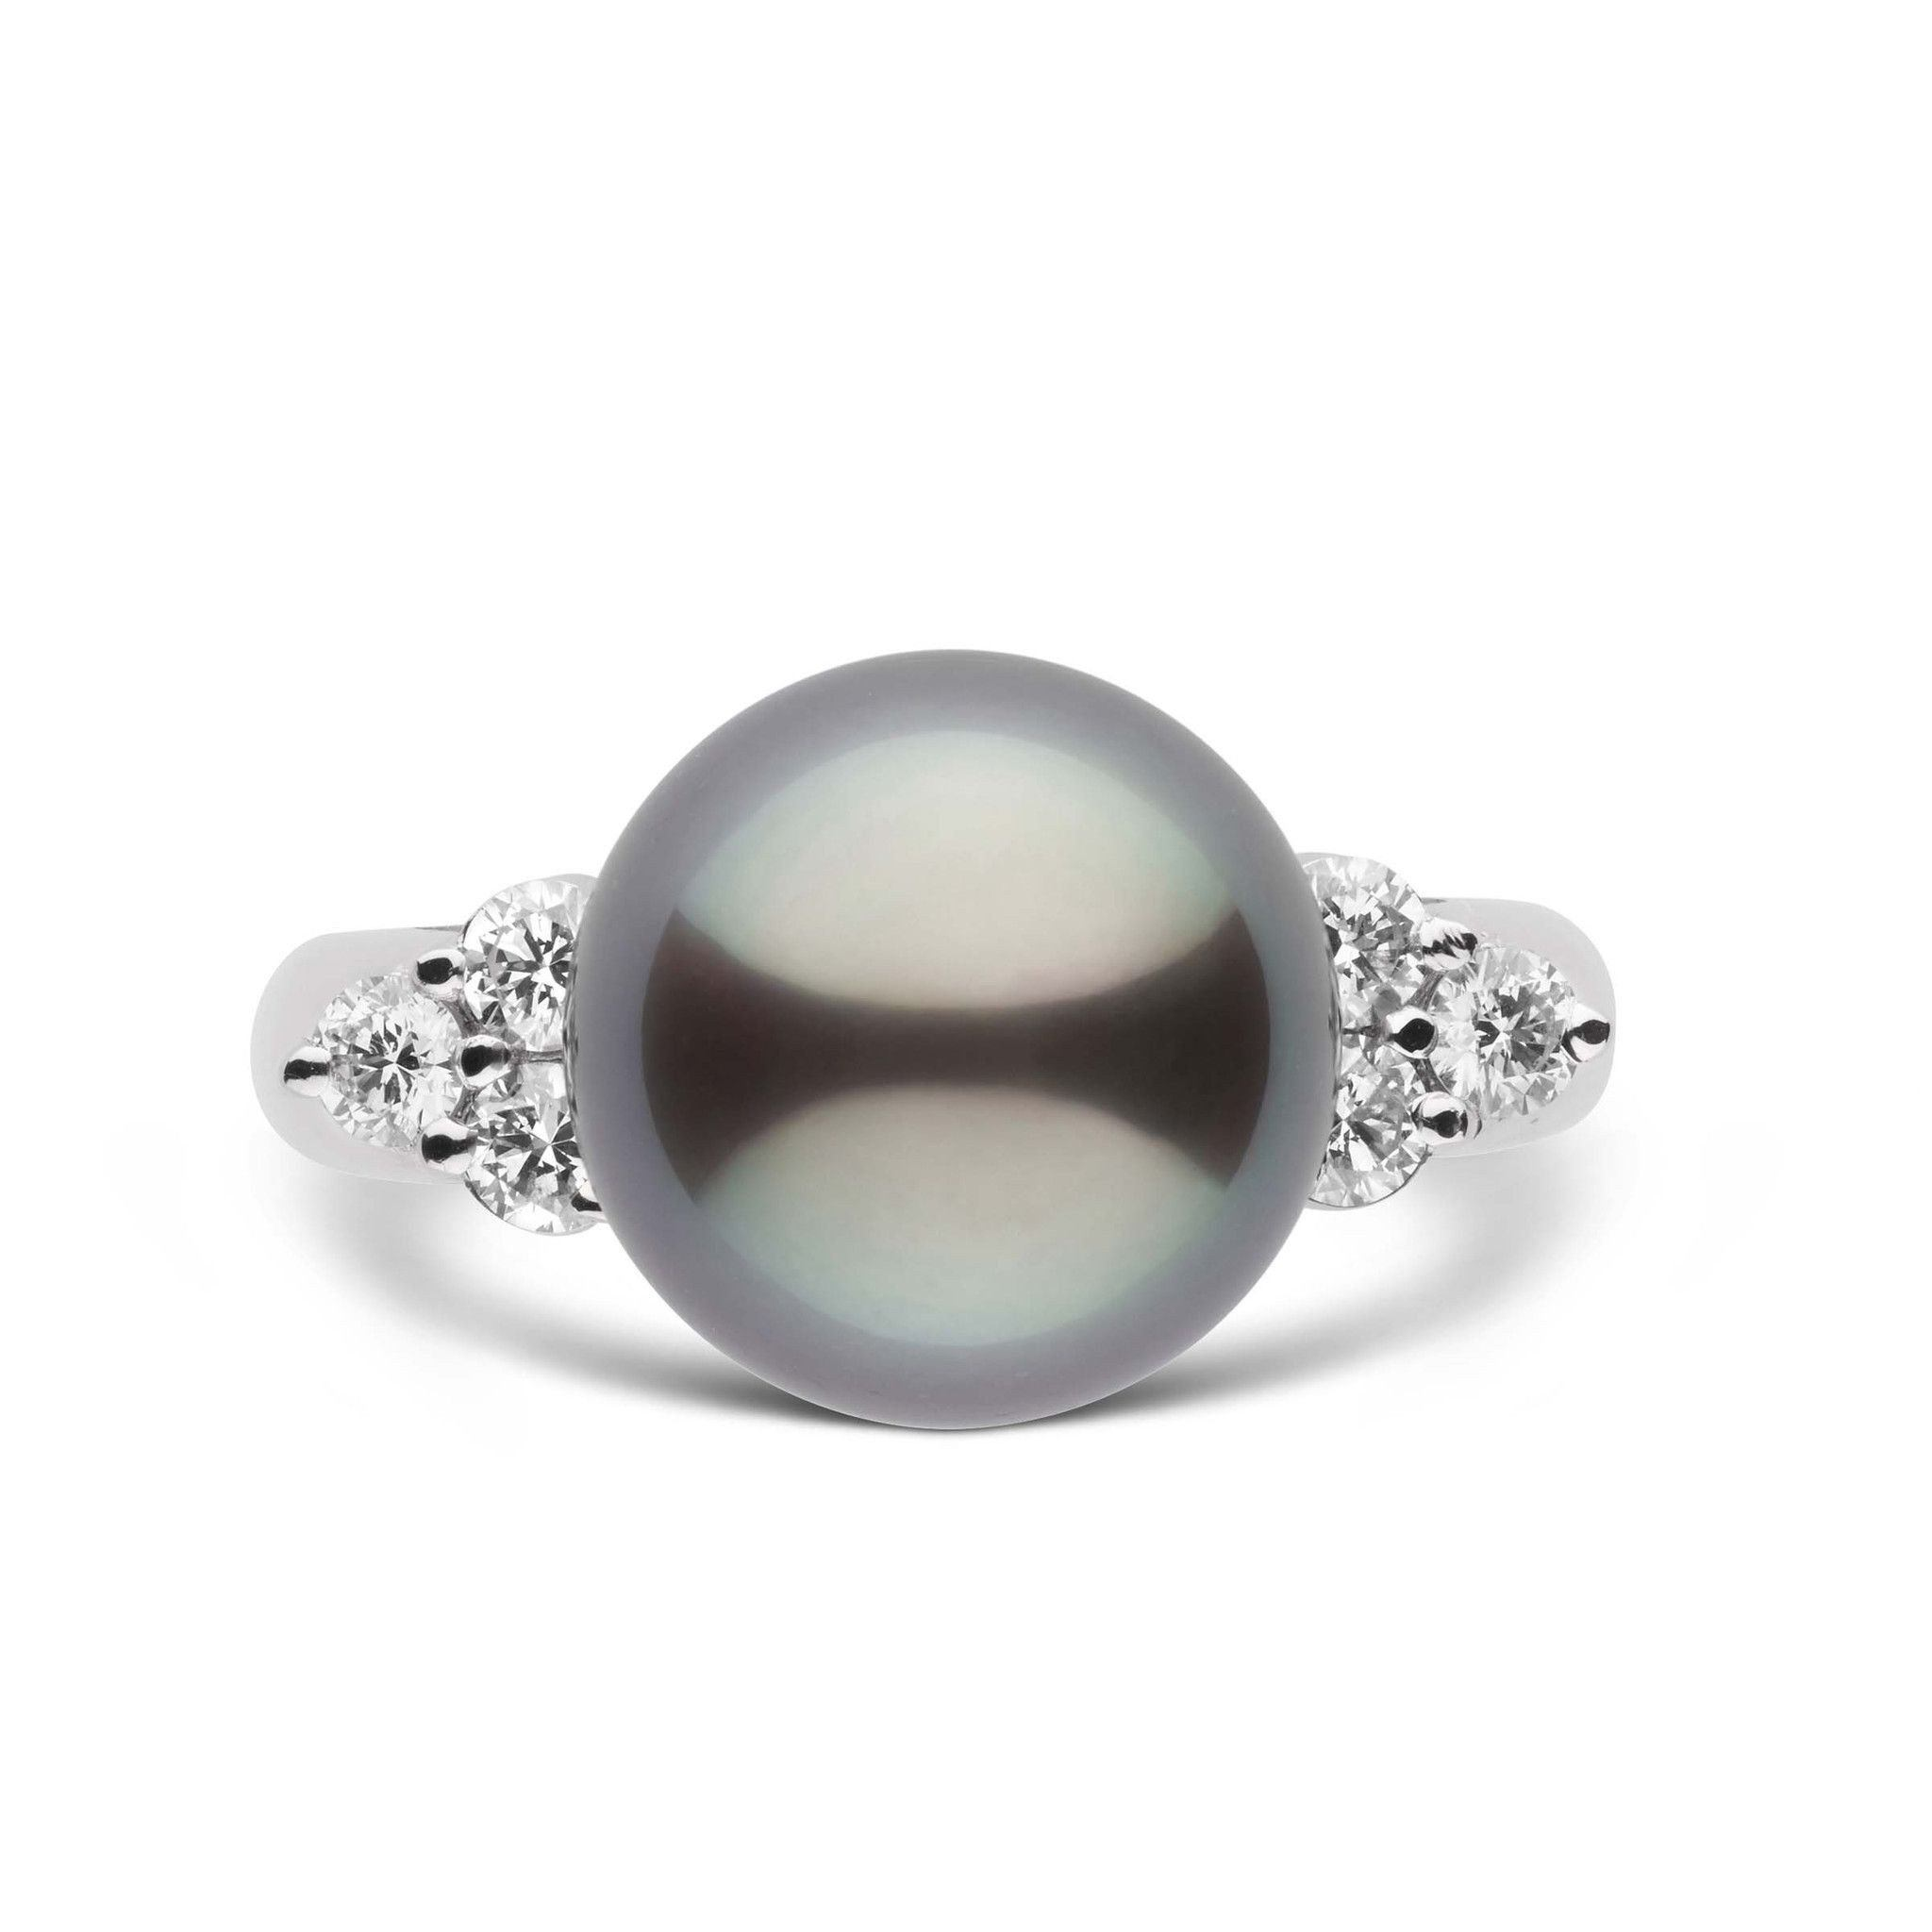 Always Collection 11.0-12.0 mm Tahitian Pearl and Diamond Ring